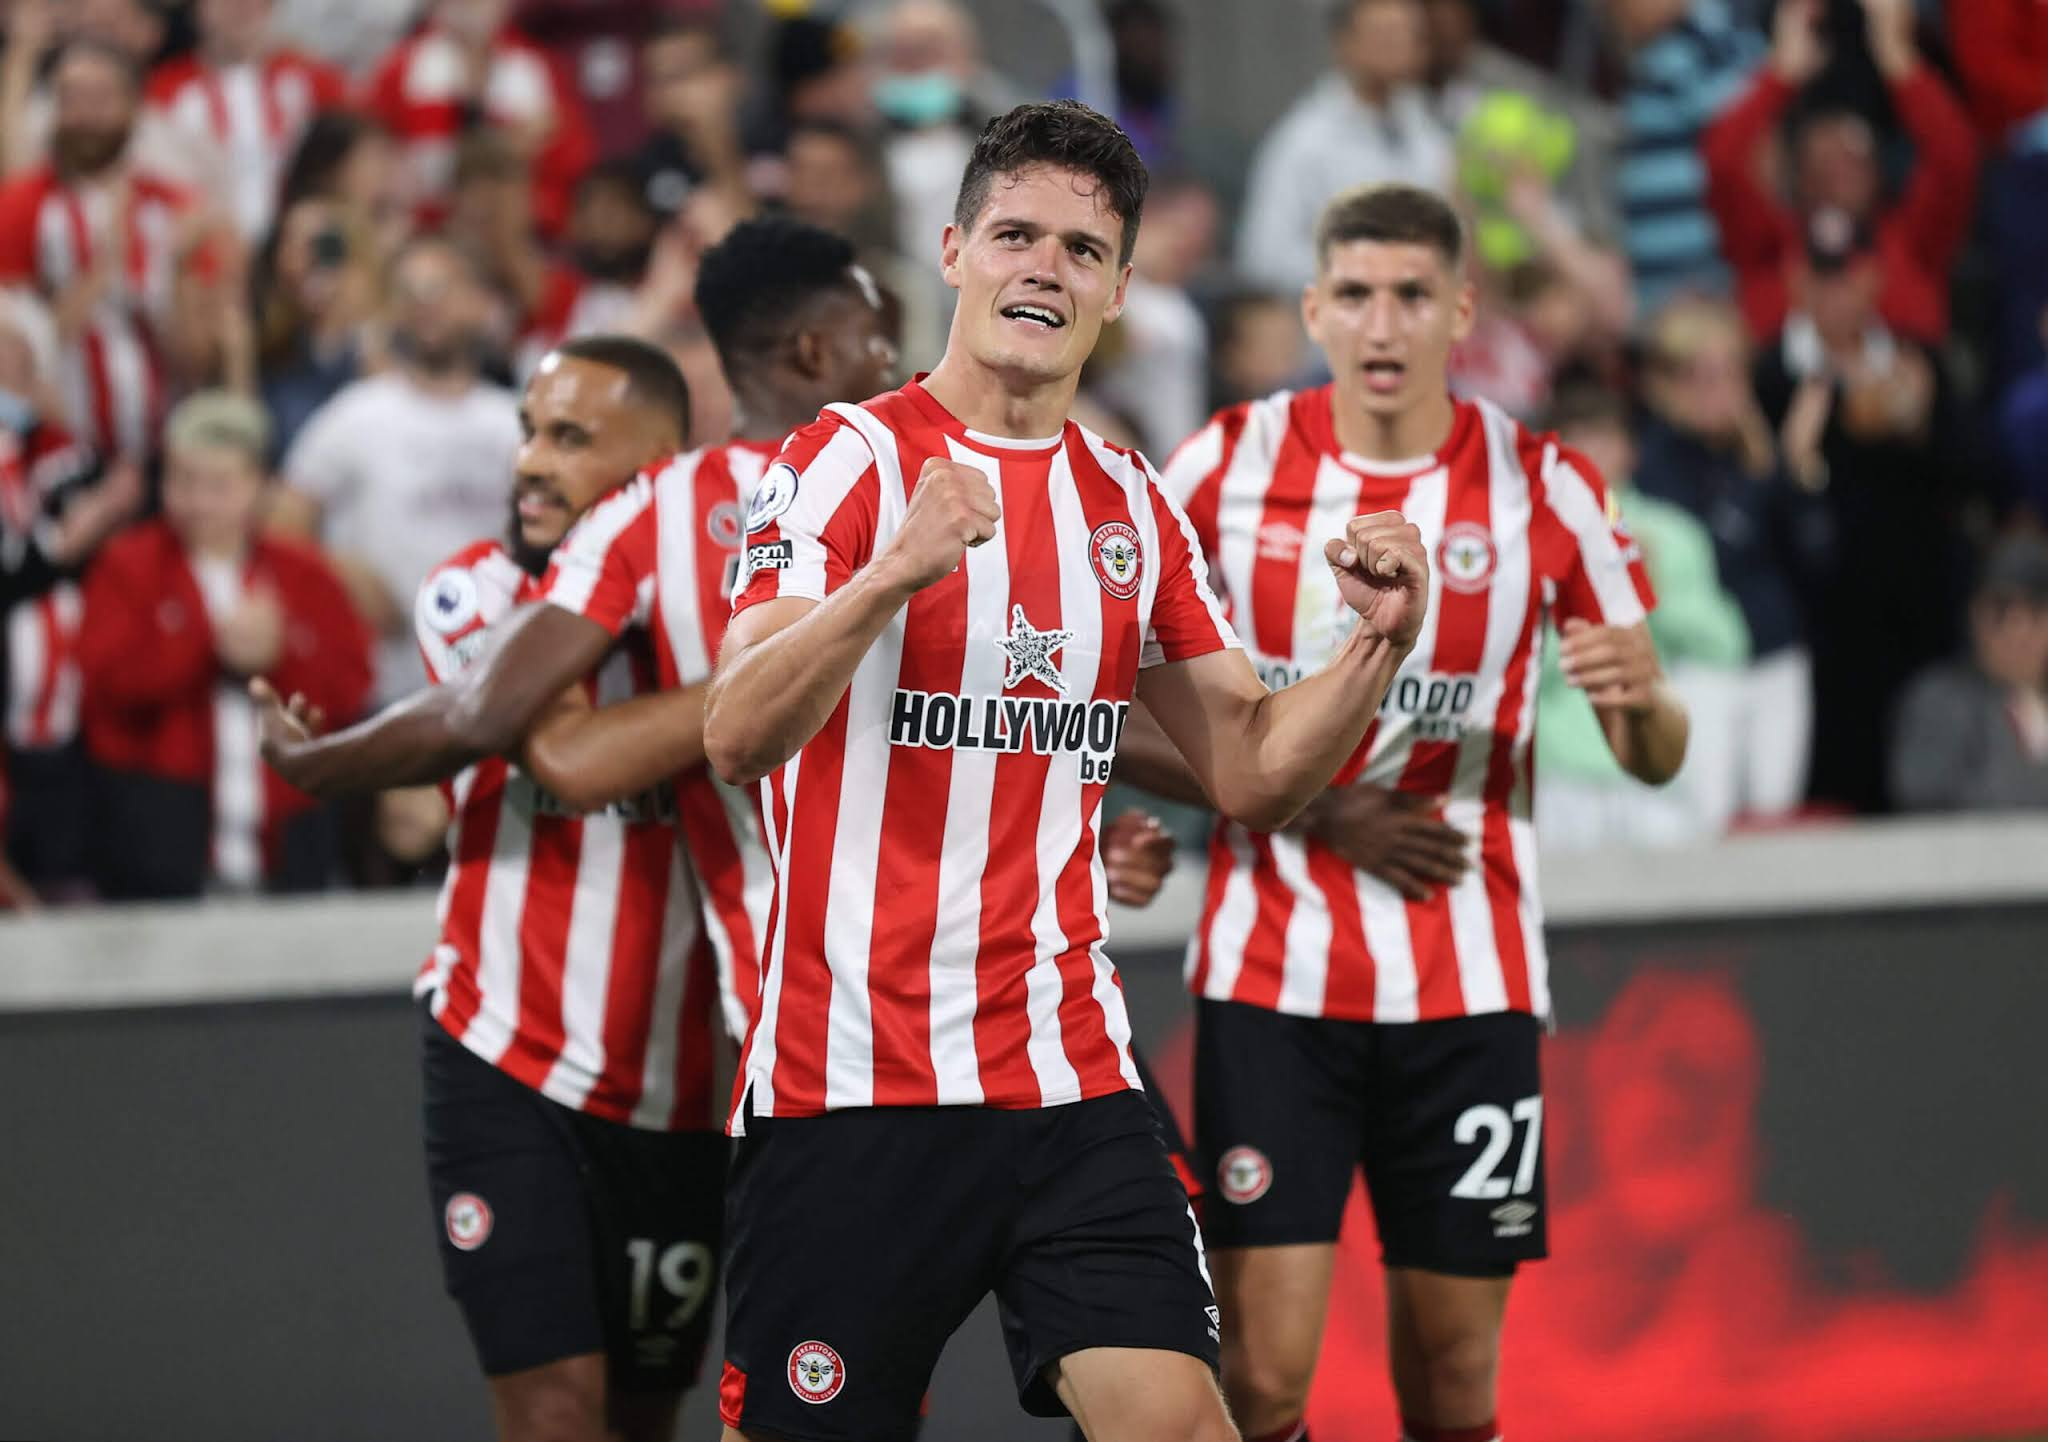 Brentford began their Premier League adventure with victory over Arsenal